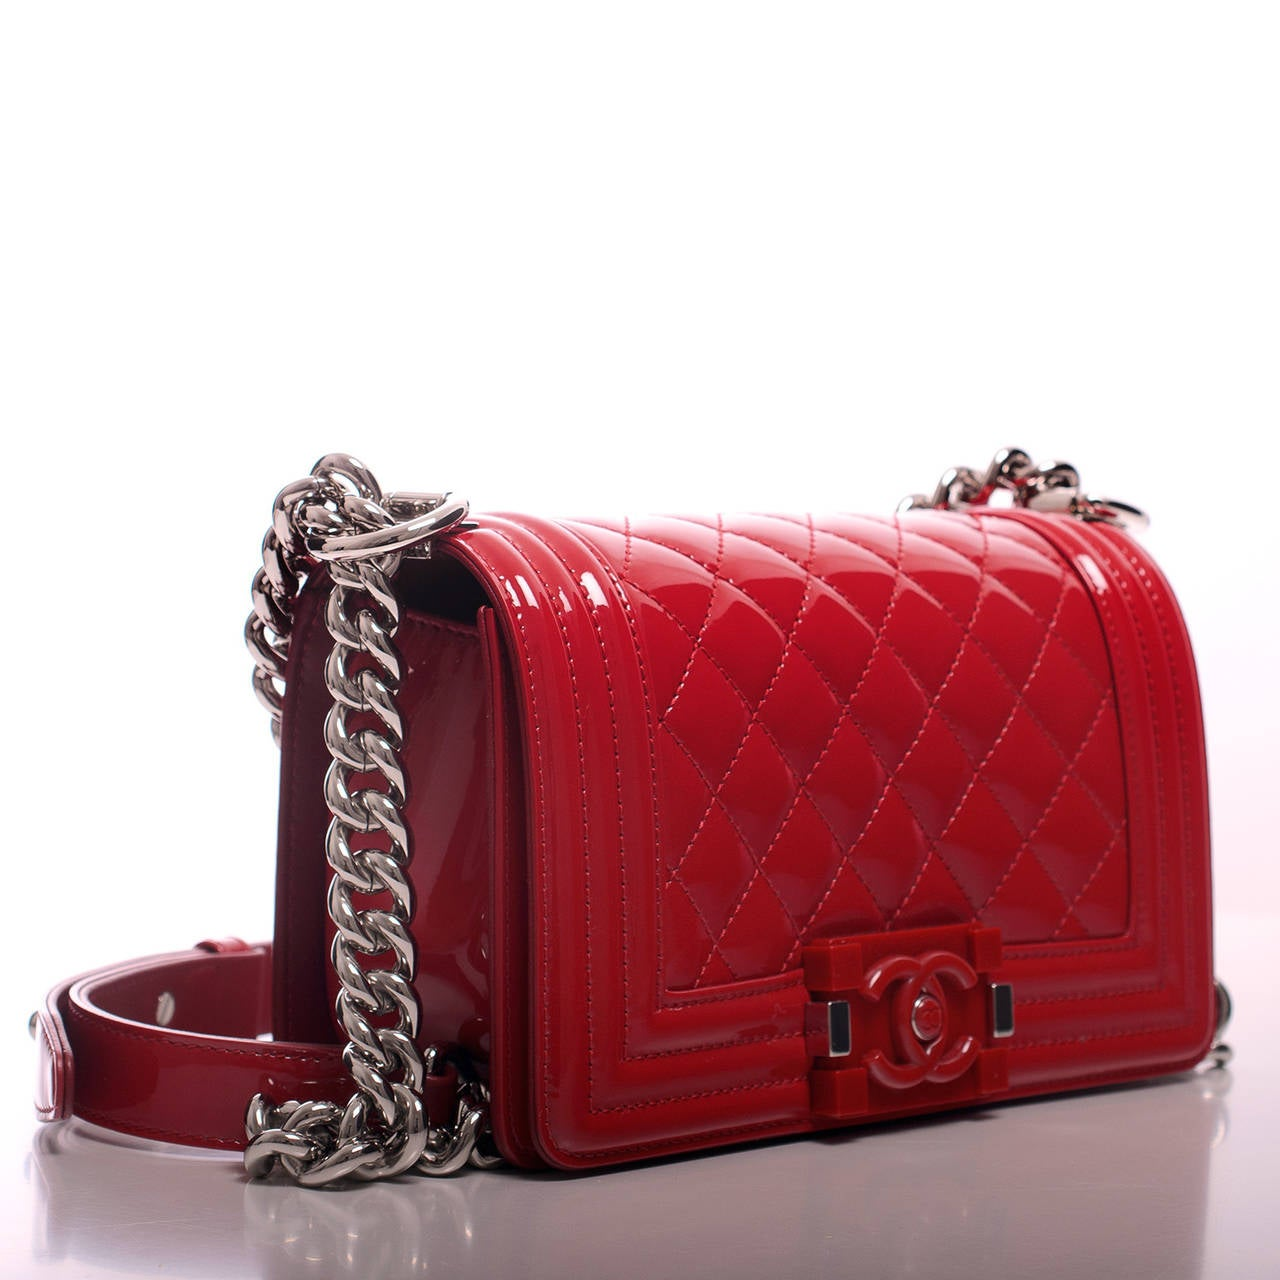 Chanel Red Quilted Patent Small Boy Bag At 1stdibs